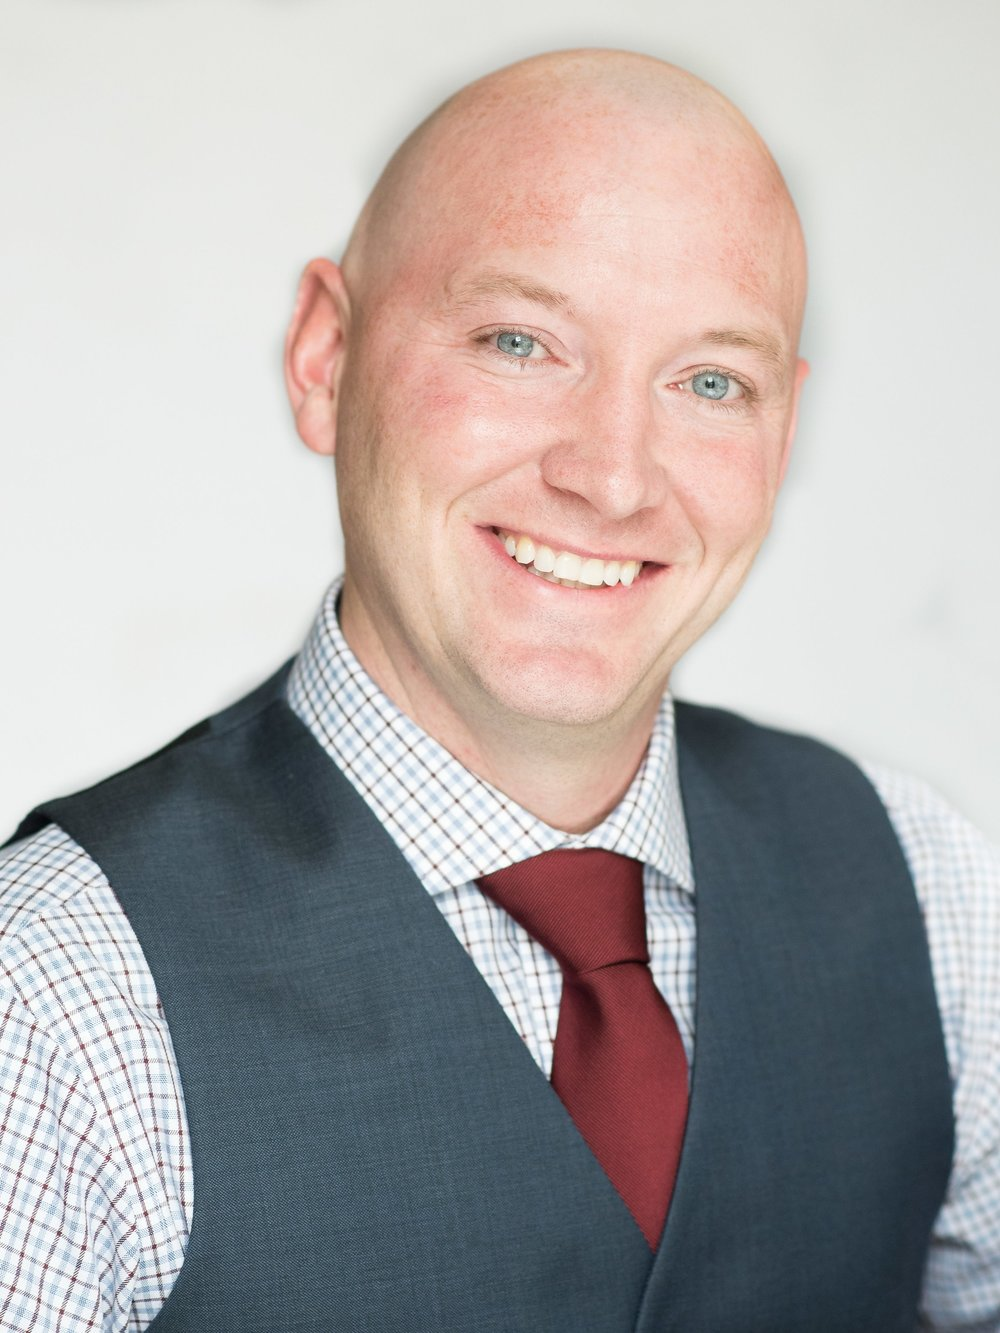 Jared Beuther, CIR <i>Associate Vice President of Recruiting</i>